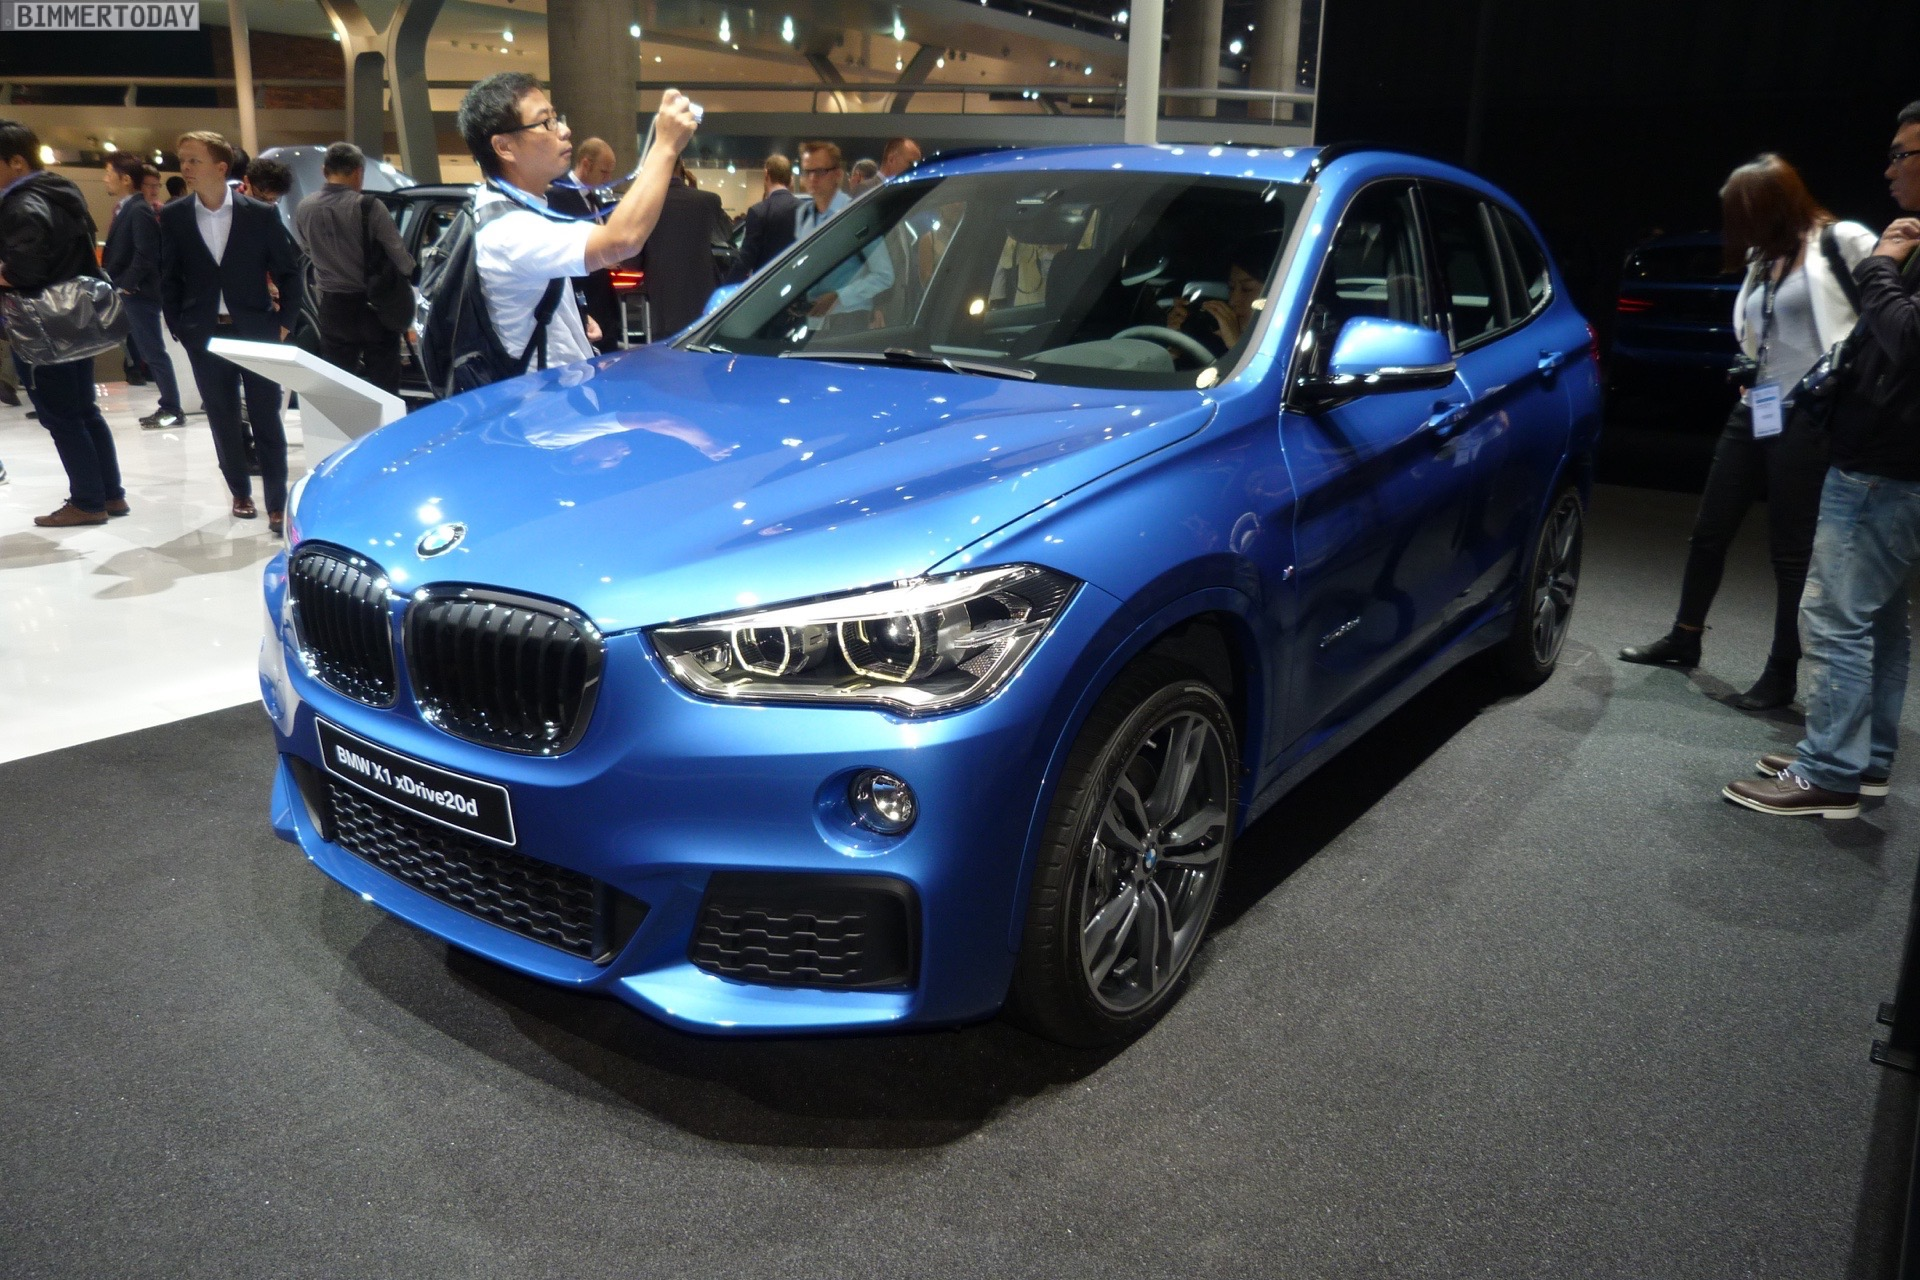 iaa 2015 bmw x1 f48 mit m sport paket in estorilblau. Black Bedroom Furniture Sets. Home Design Ideas